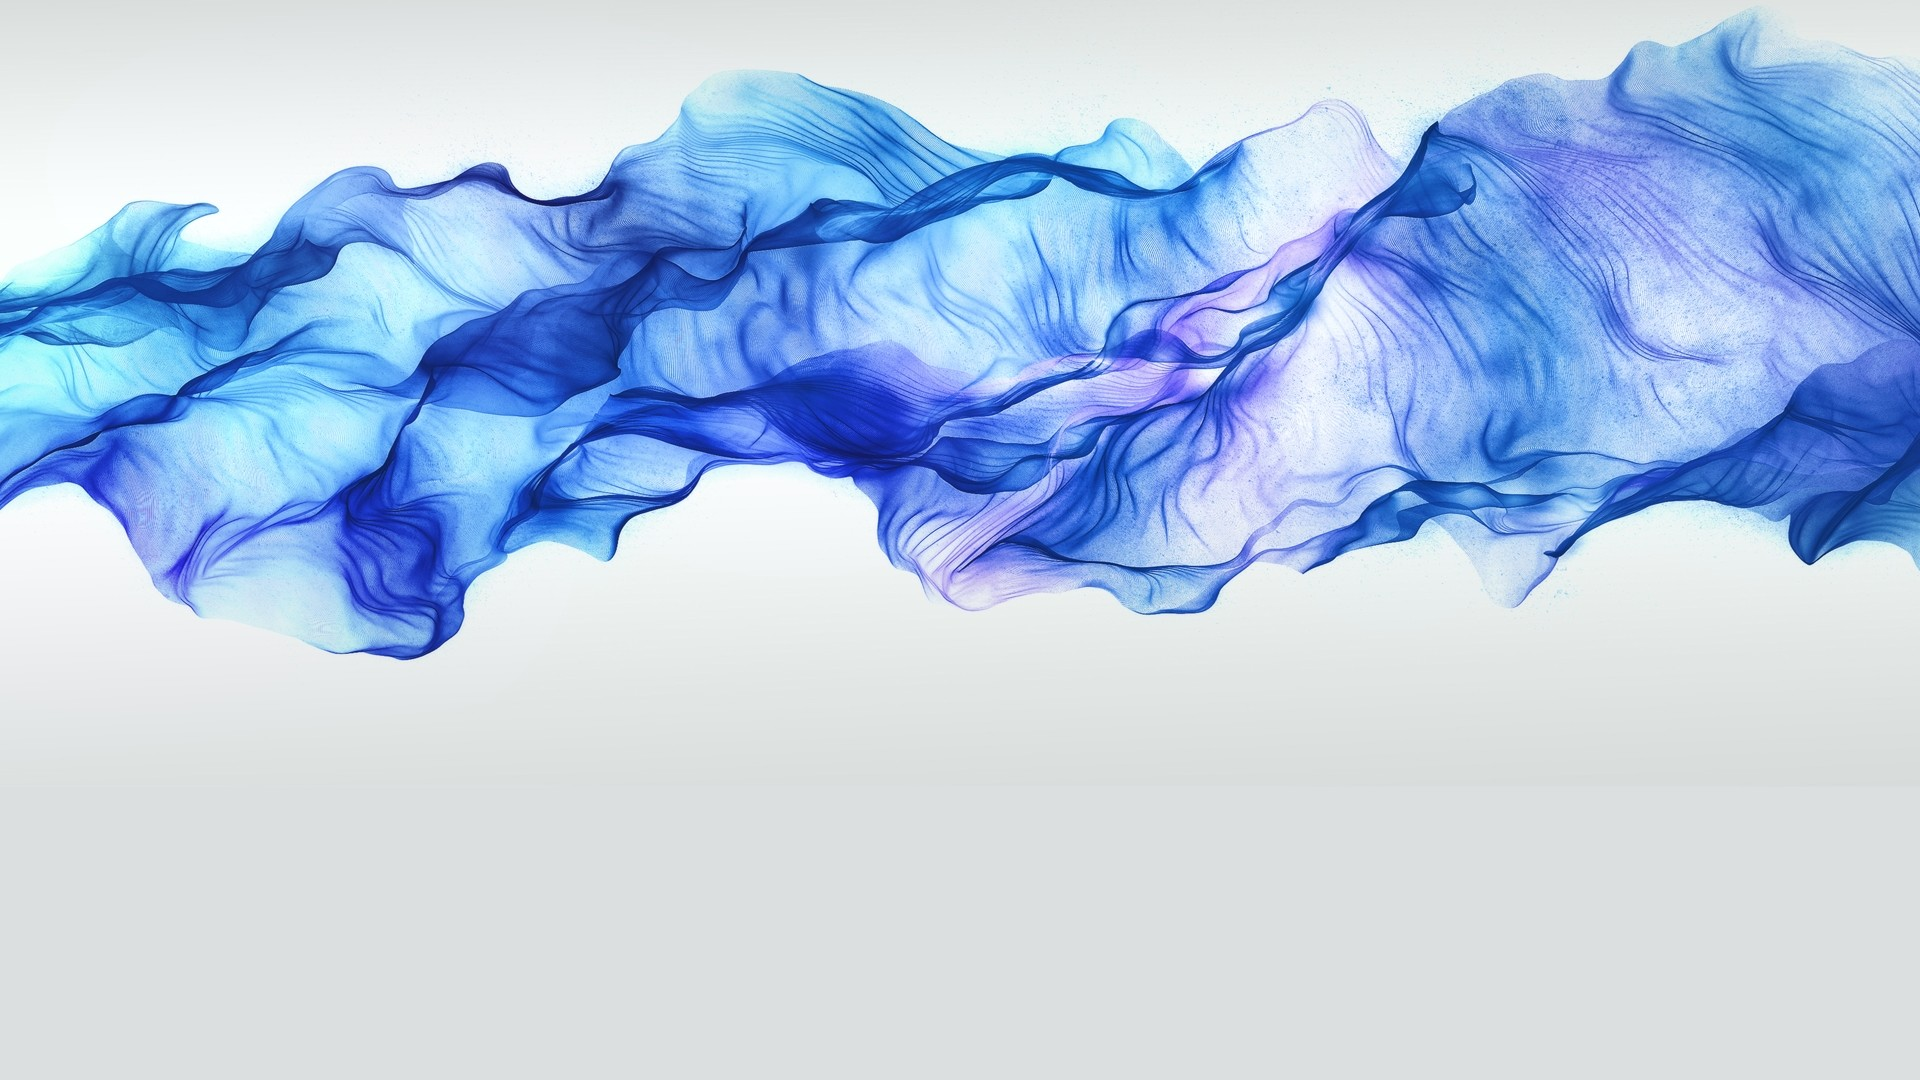 abstract wallpapers 1080p – Favourite Pictures